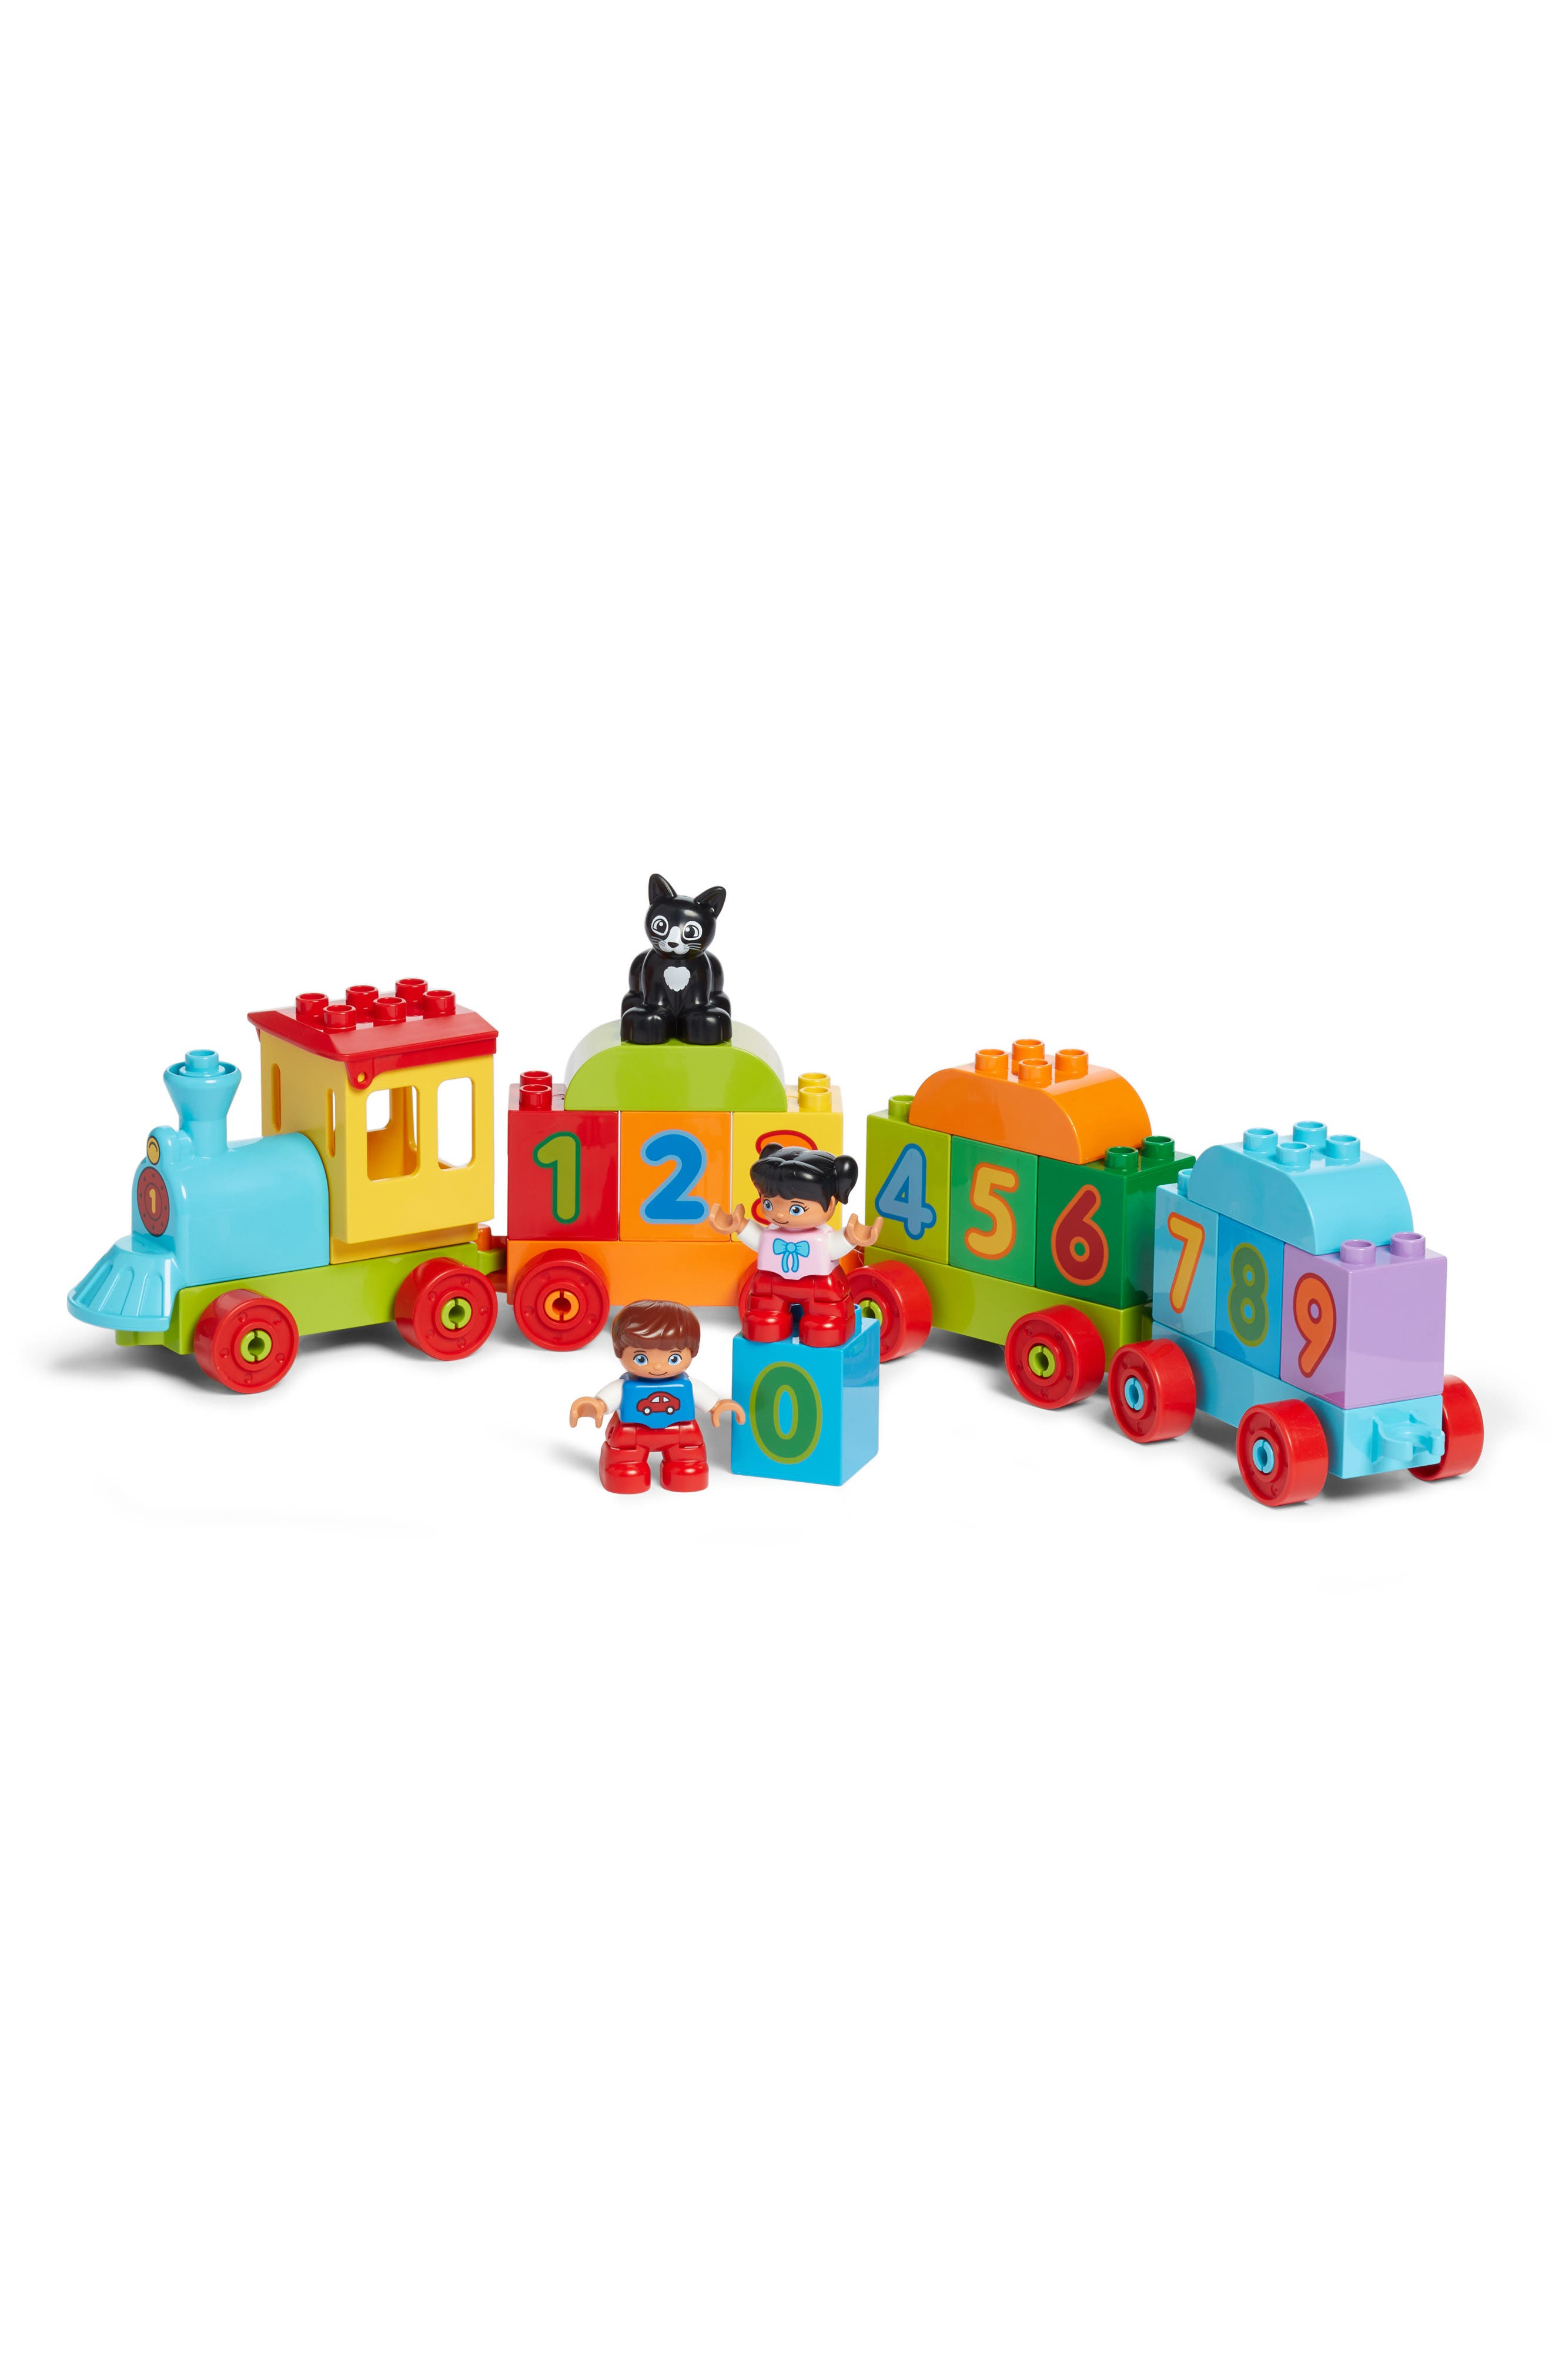 DUPLO<sup>®</sup> Number Train - 10847,                             Main thumbnail 1, color,                             300